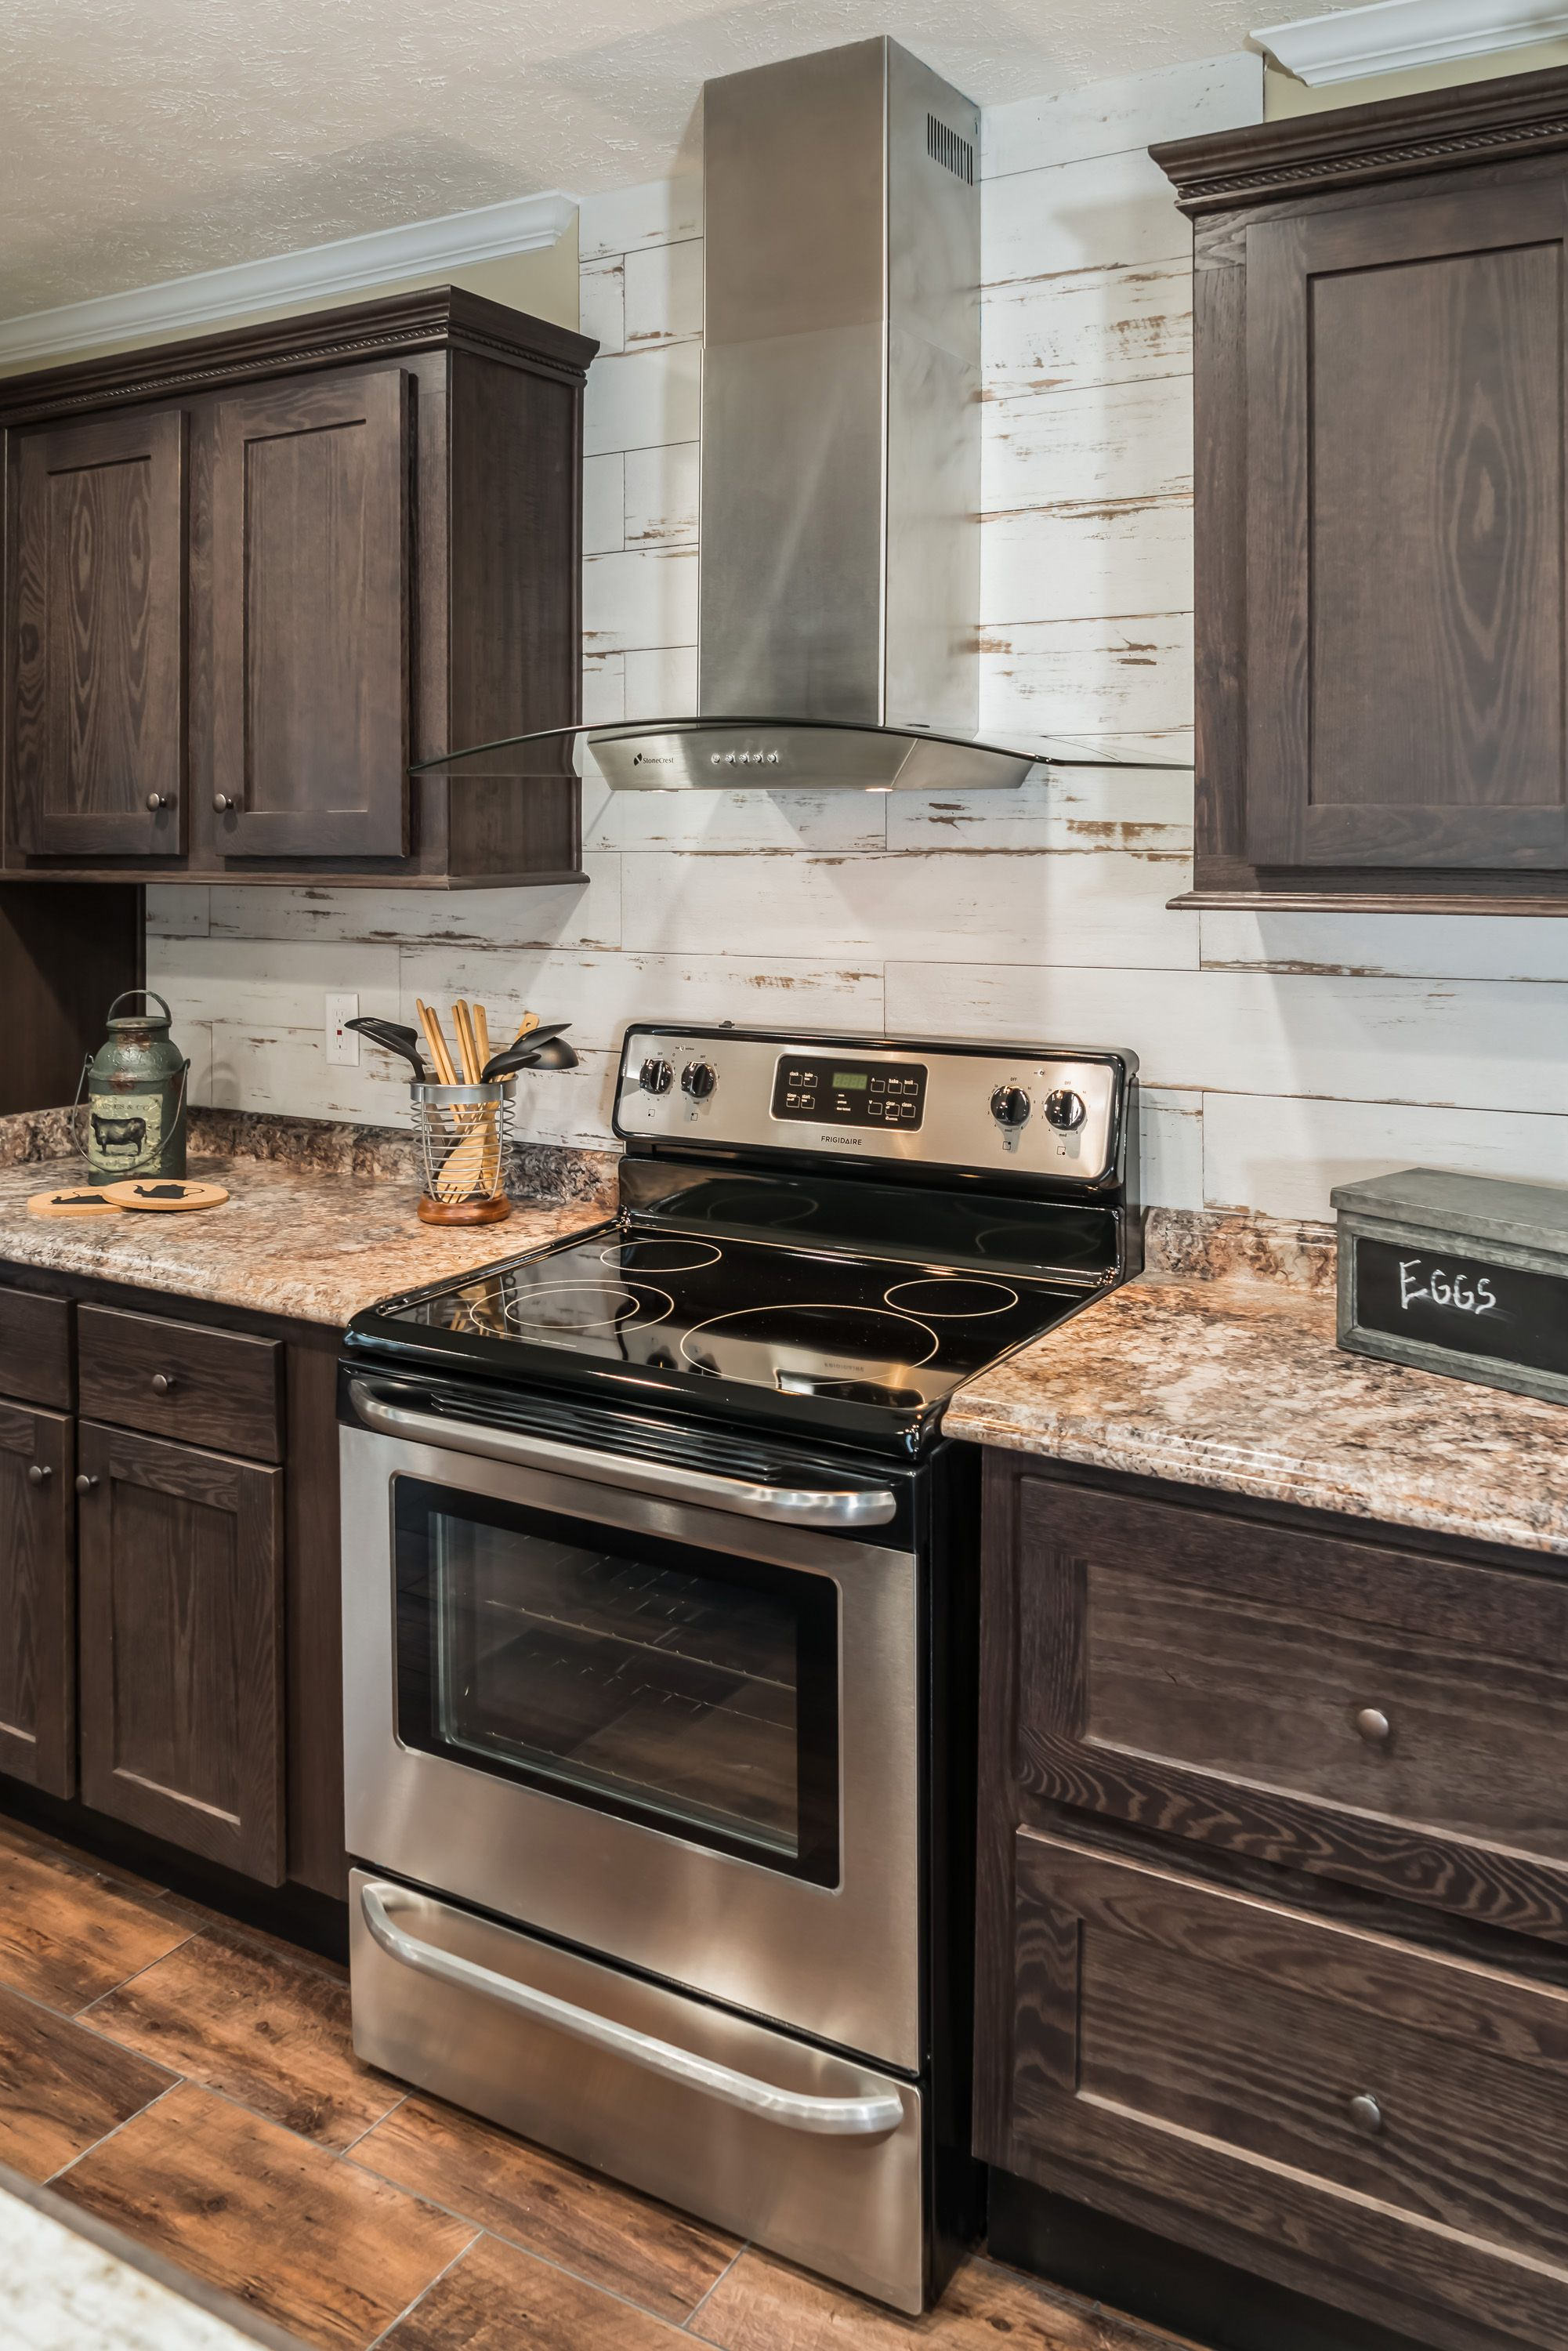 Kb 3241 Kabco Builders Kitchen Inspirations Kitchen Cabinets And Backsplash Dark Kitchen Cabinets